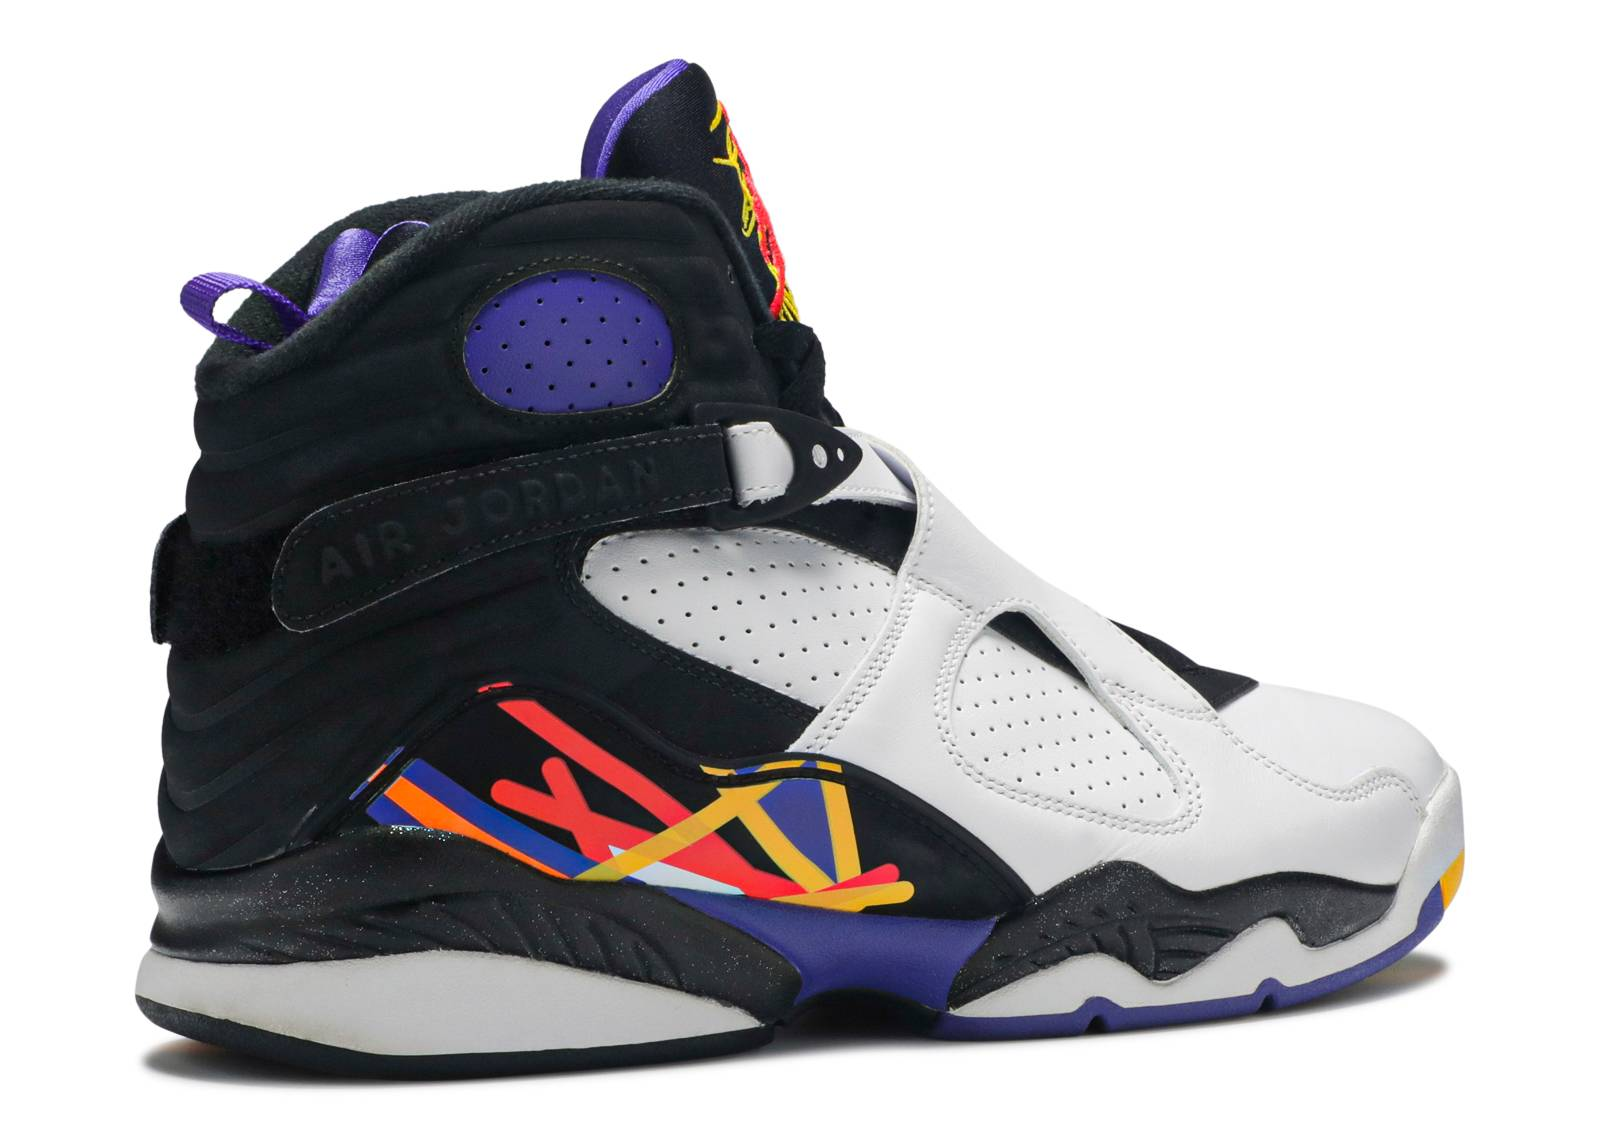 f27a5ead69e4 Air Jordan 8 Retro